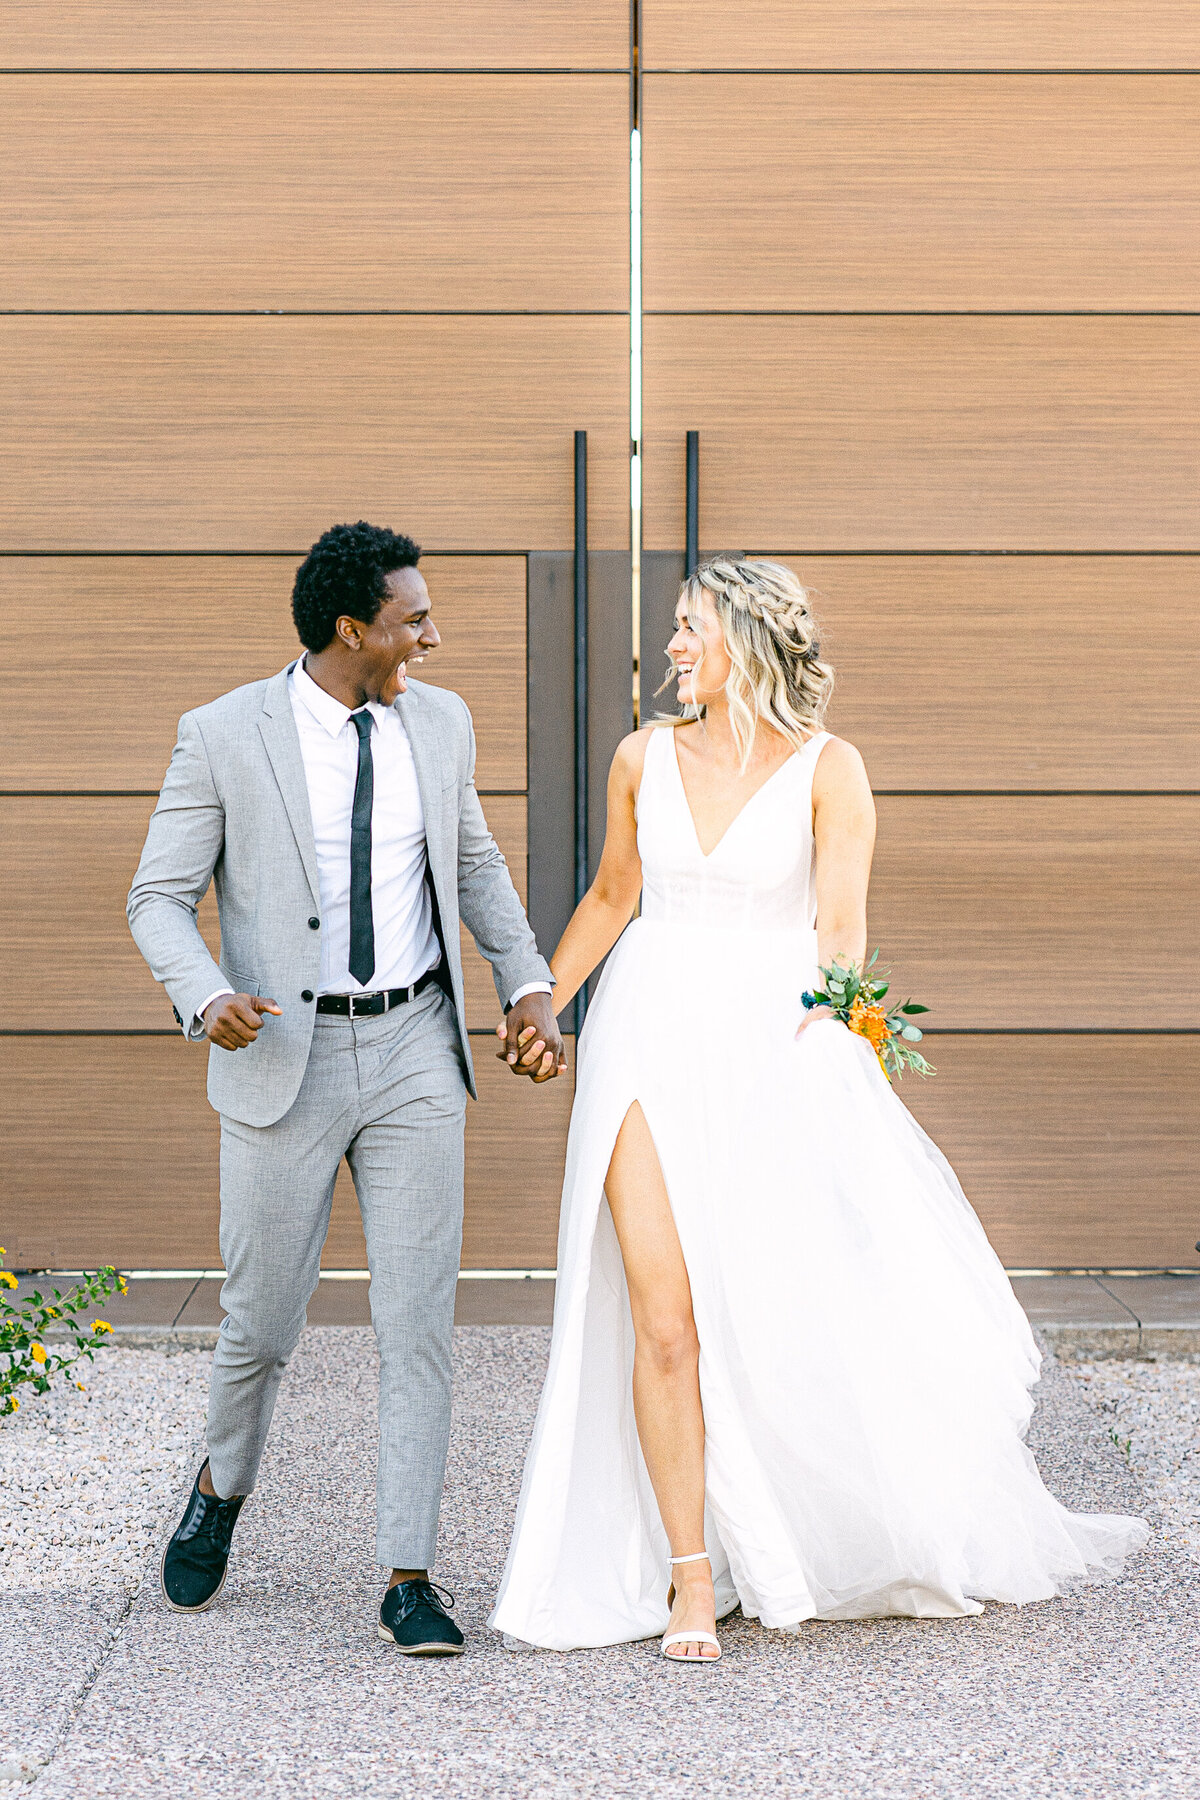 Phoenix Wedding Photographer - The Paseo - Atlas Rose Photography AZ01